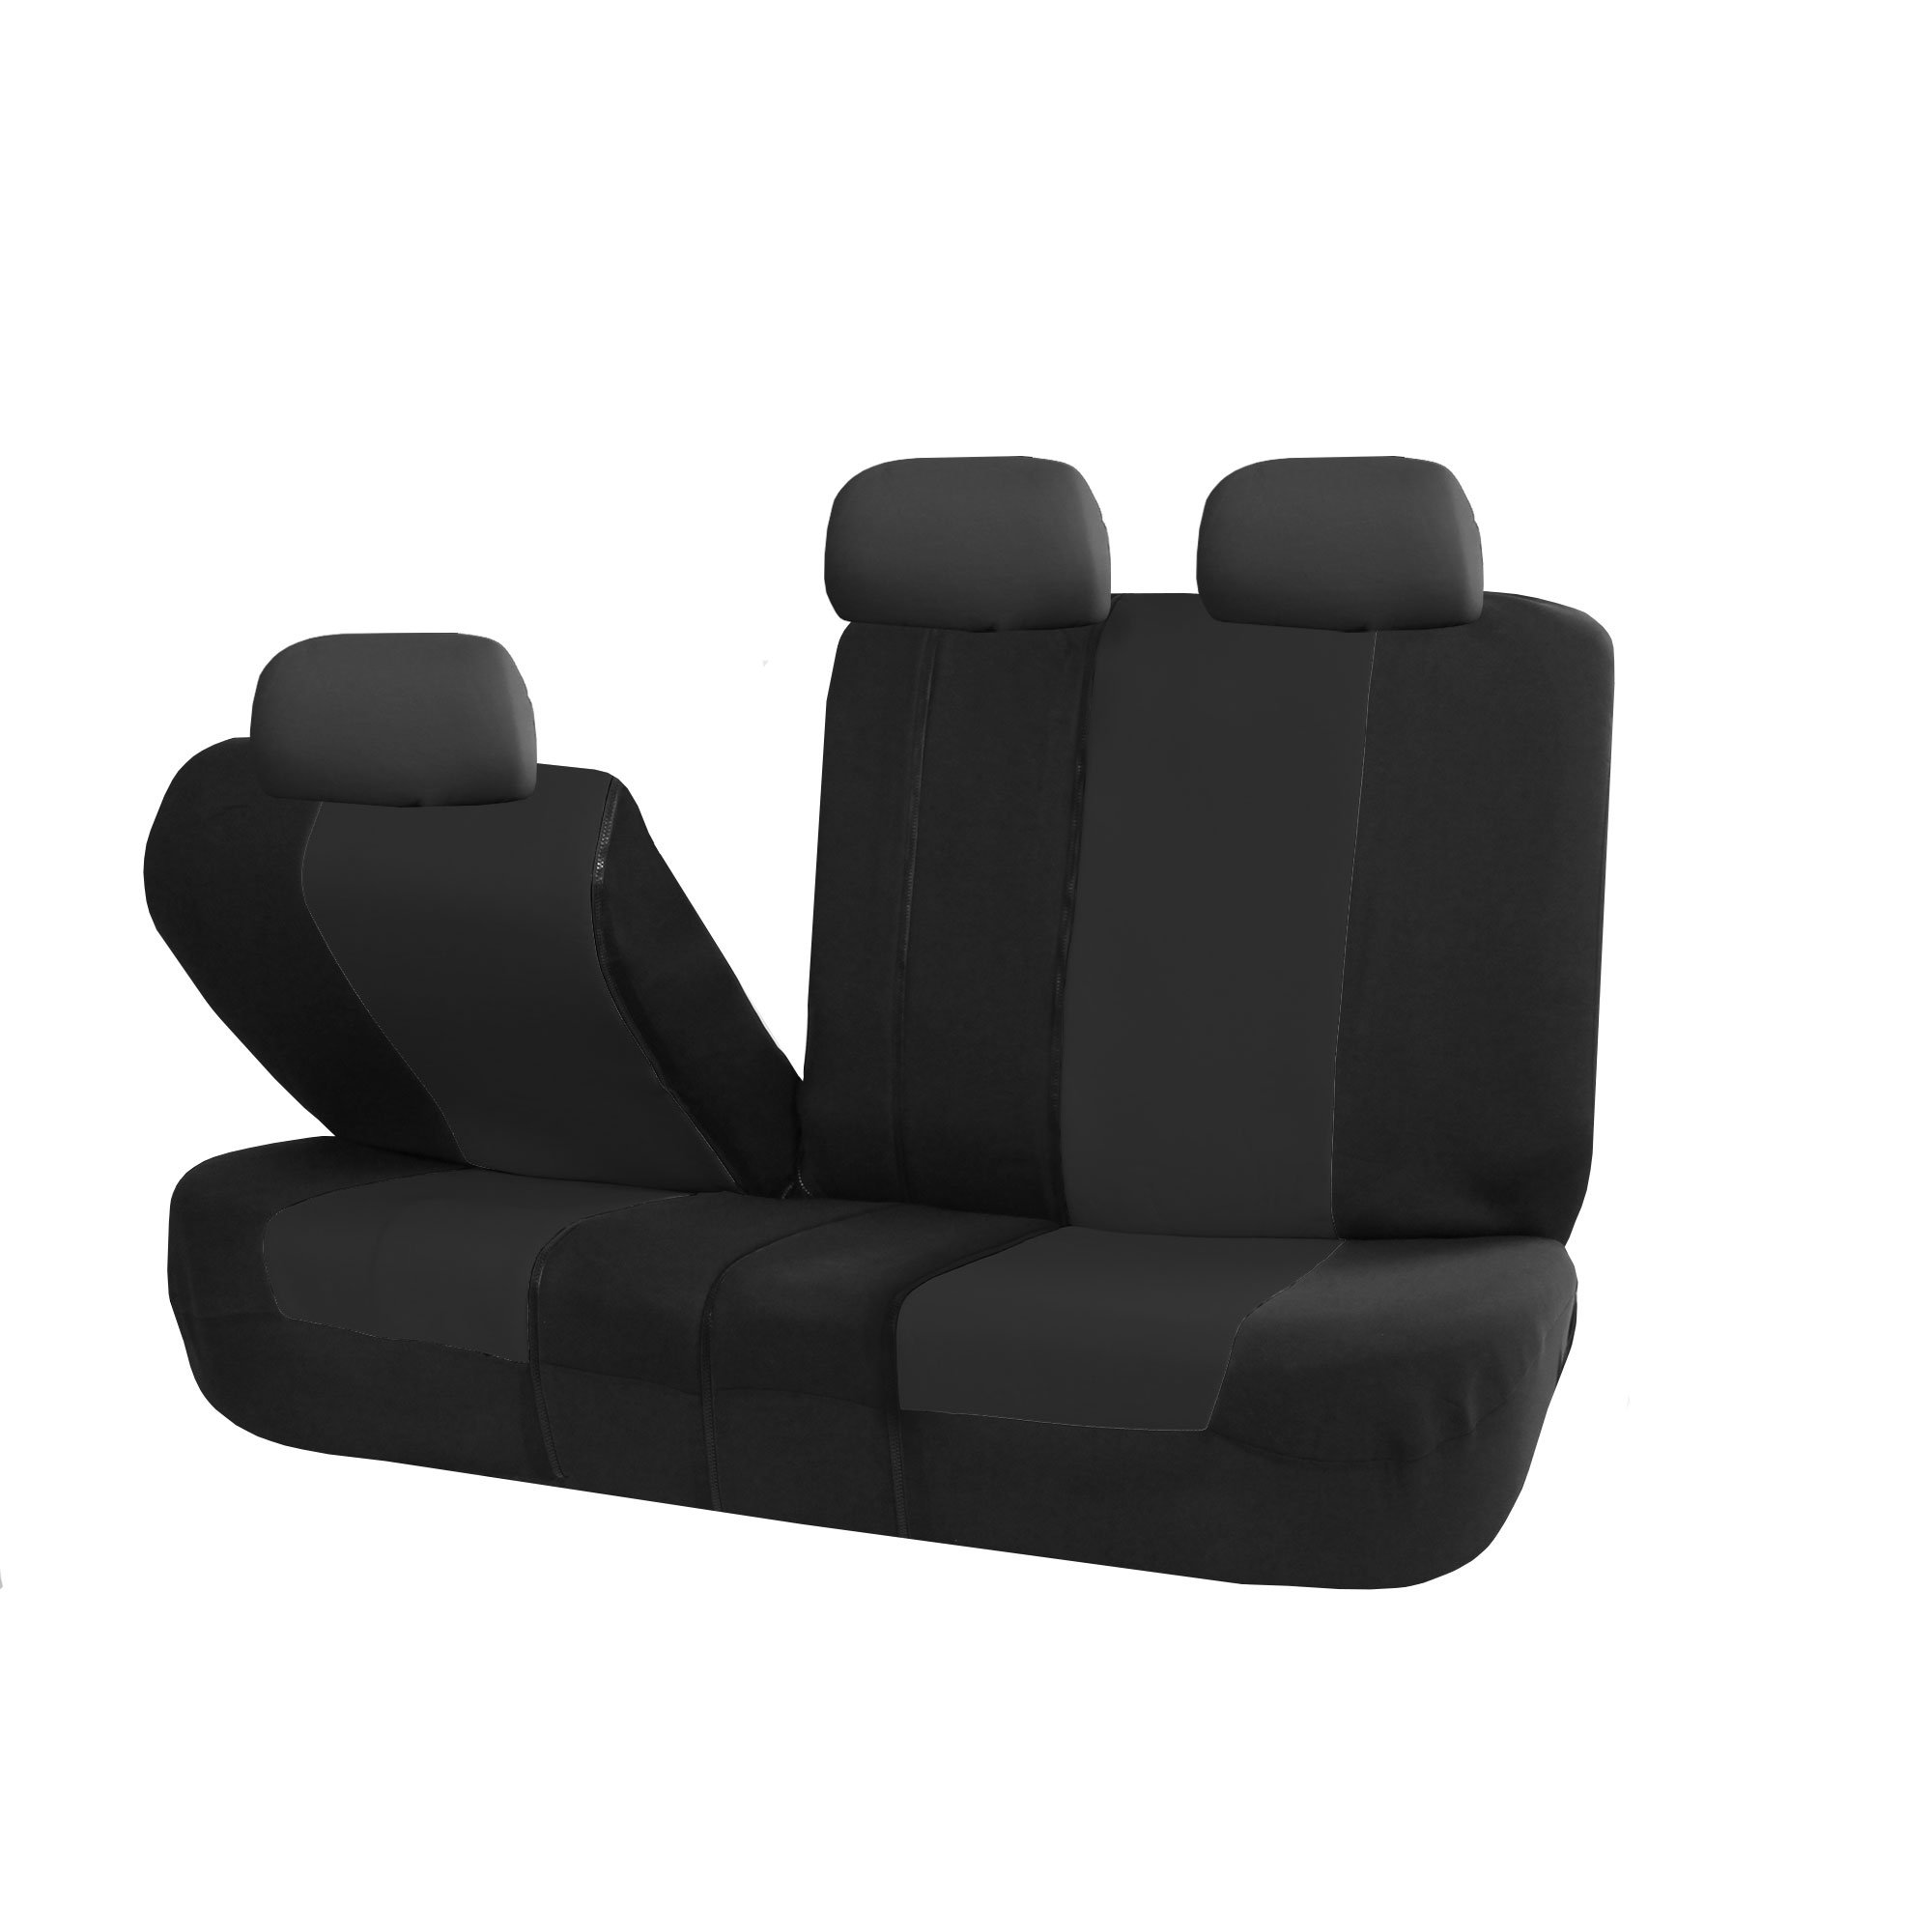 FH Group FB051BLACK013 Black Universal Split Bench Seat Cover (Allow Right and Left 40/60 Split, 50/50 Split Fit Most of Vehicle) by FH Group